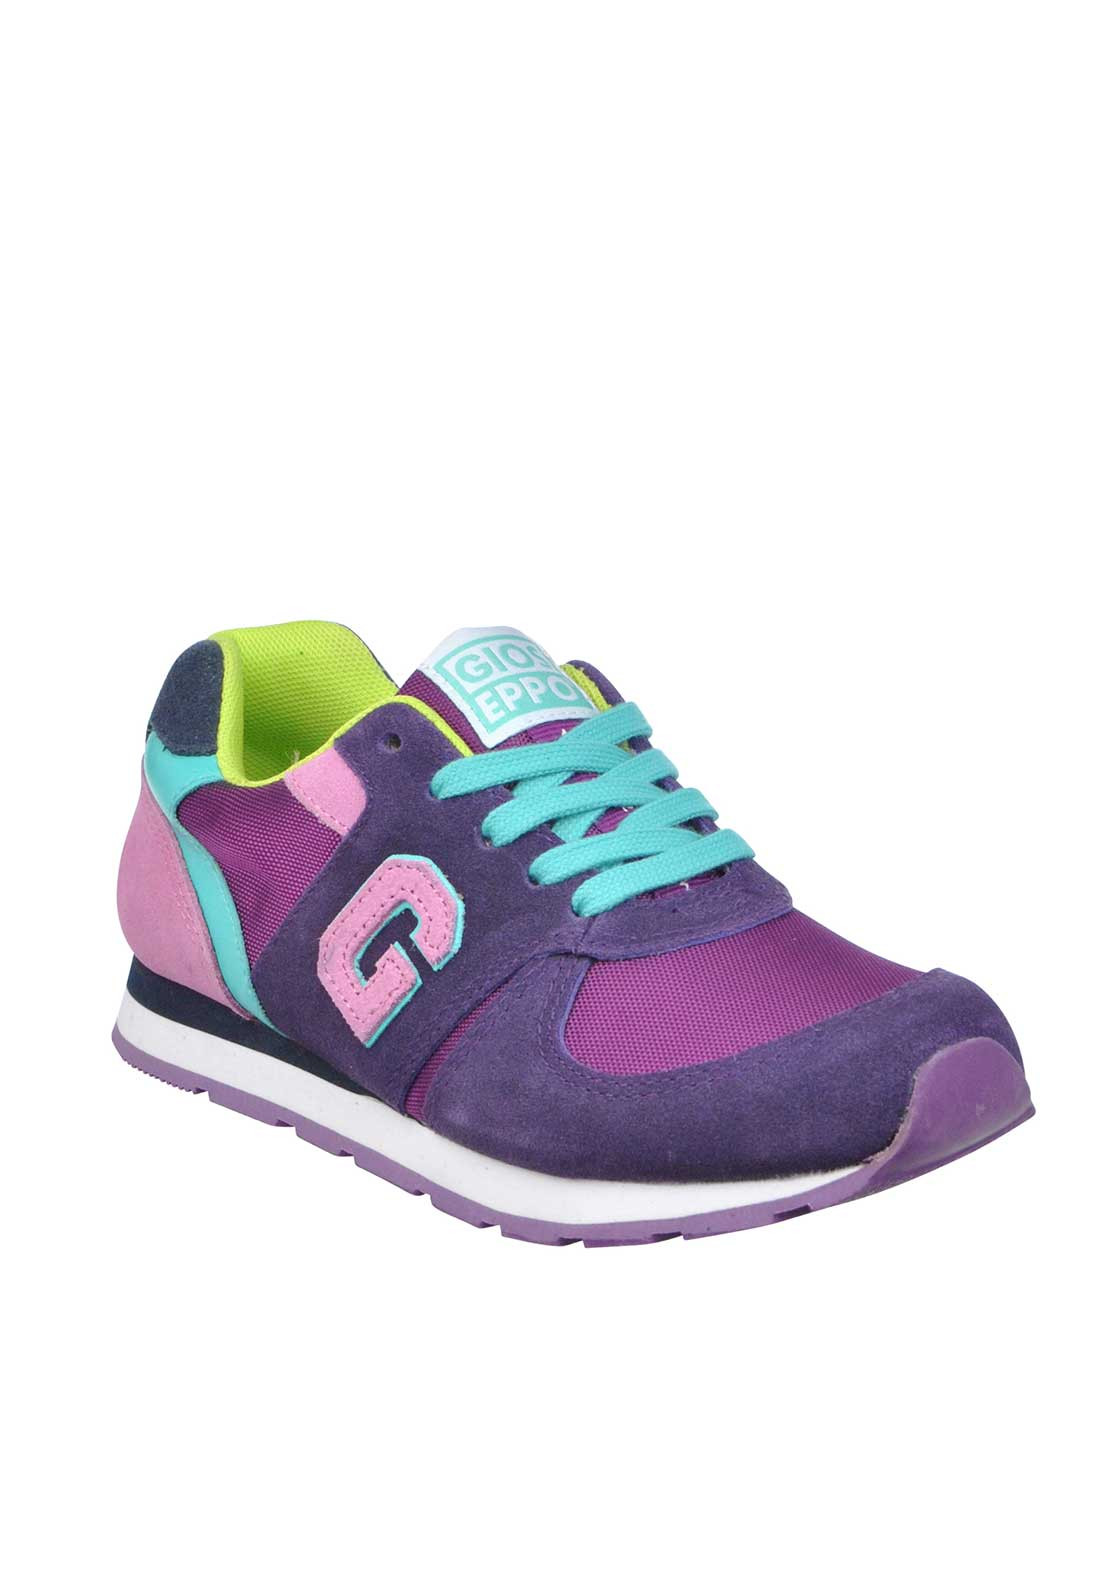 Gioseppo Betroka Suede Panel Trainers, Purple